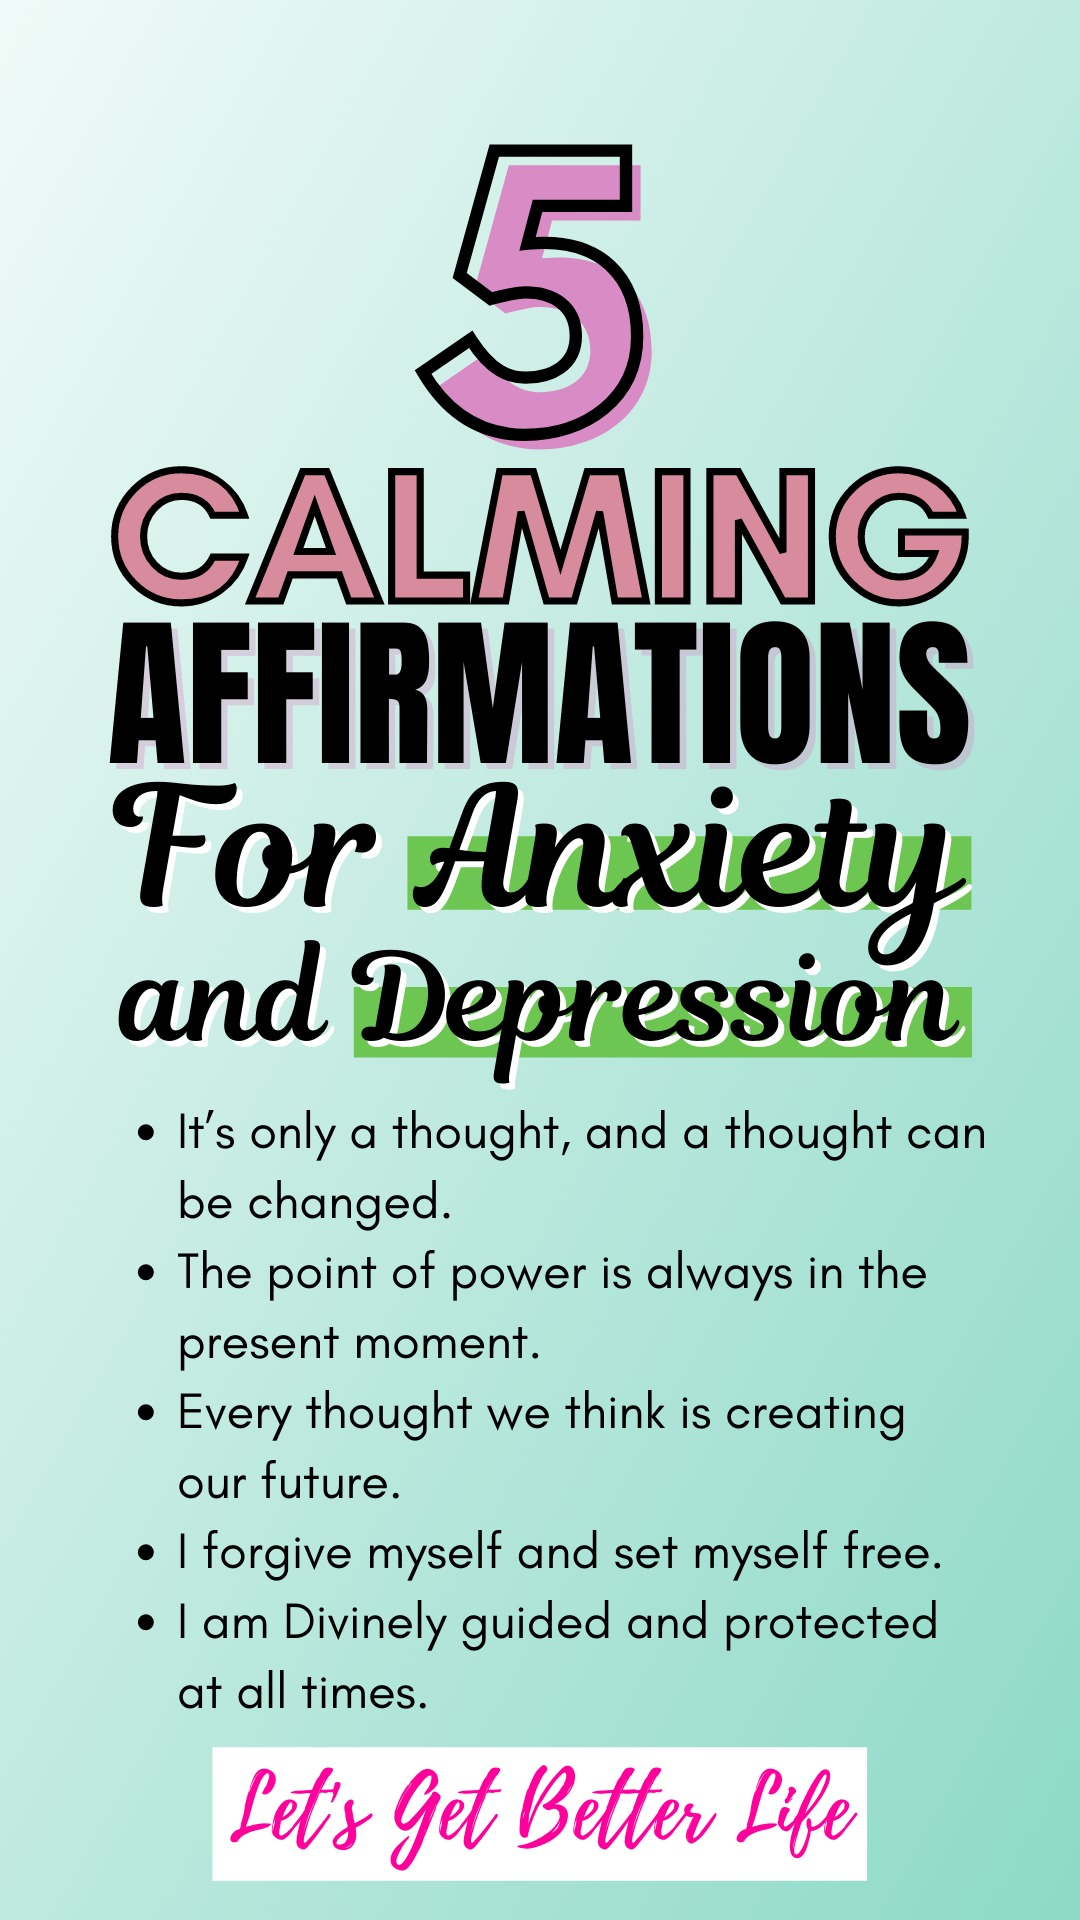 5 Calming Affirmations For Anxiety and Depression